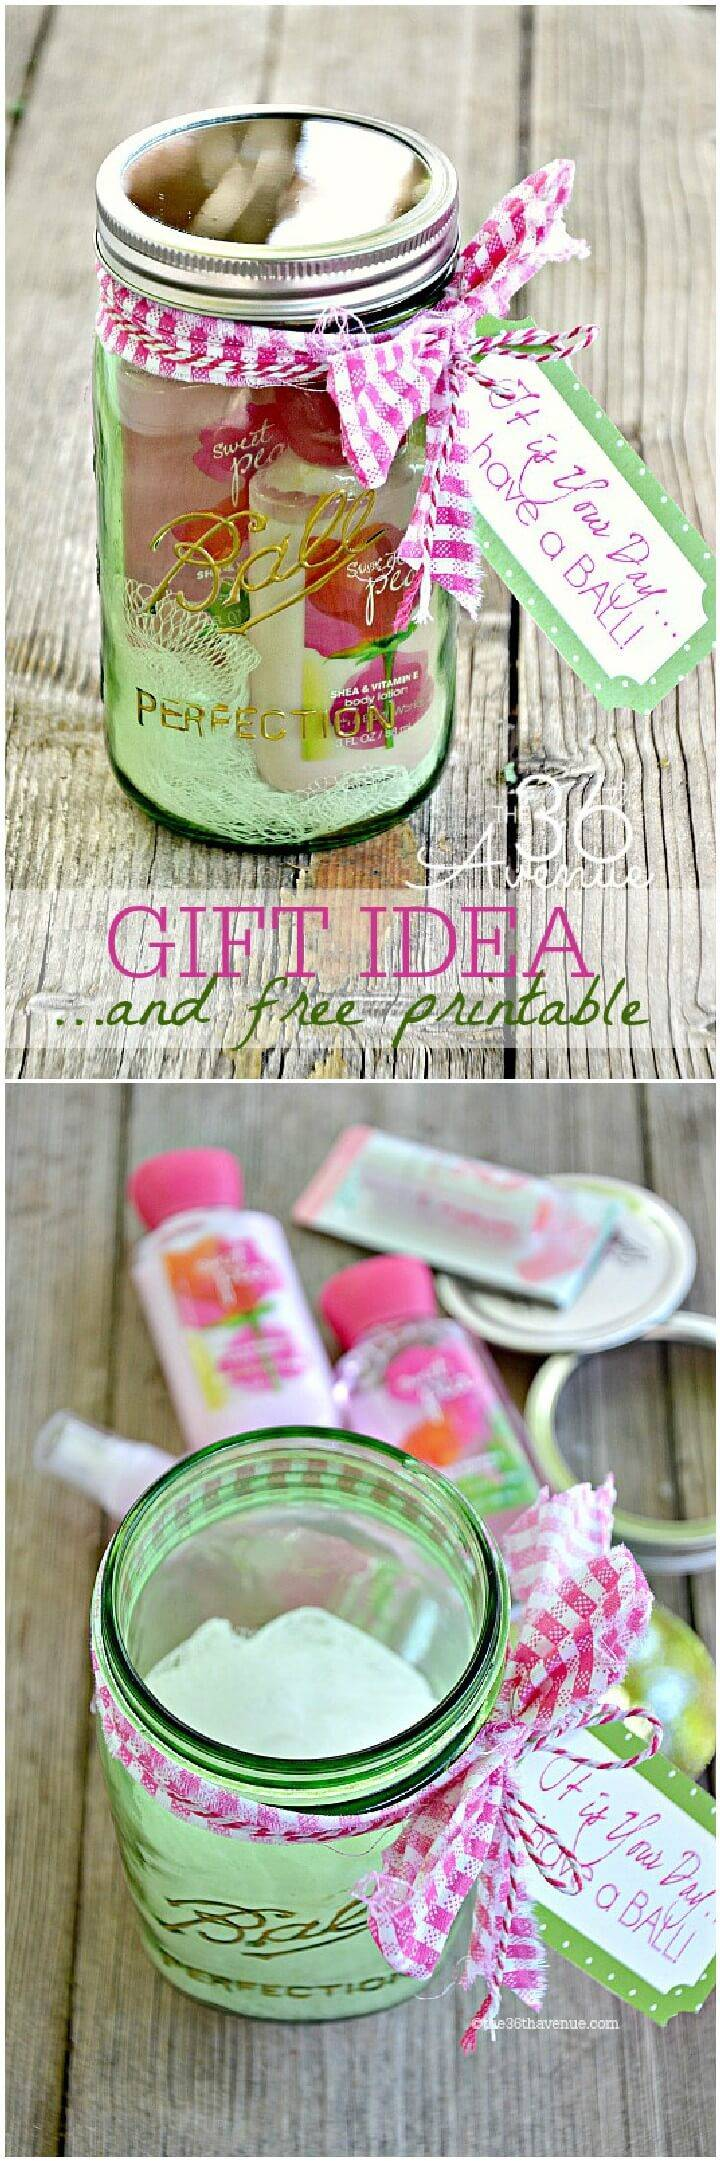 DIY Mason Jar Girls Gift Idea with Free Printable